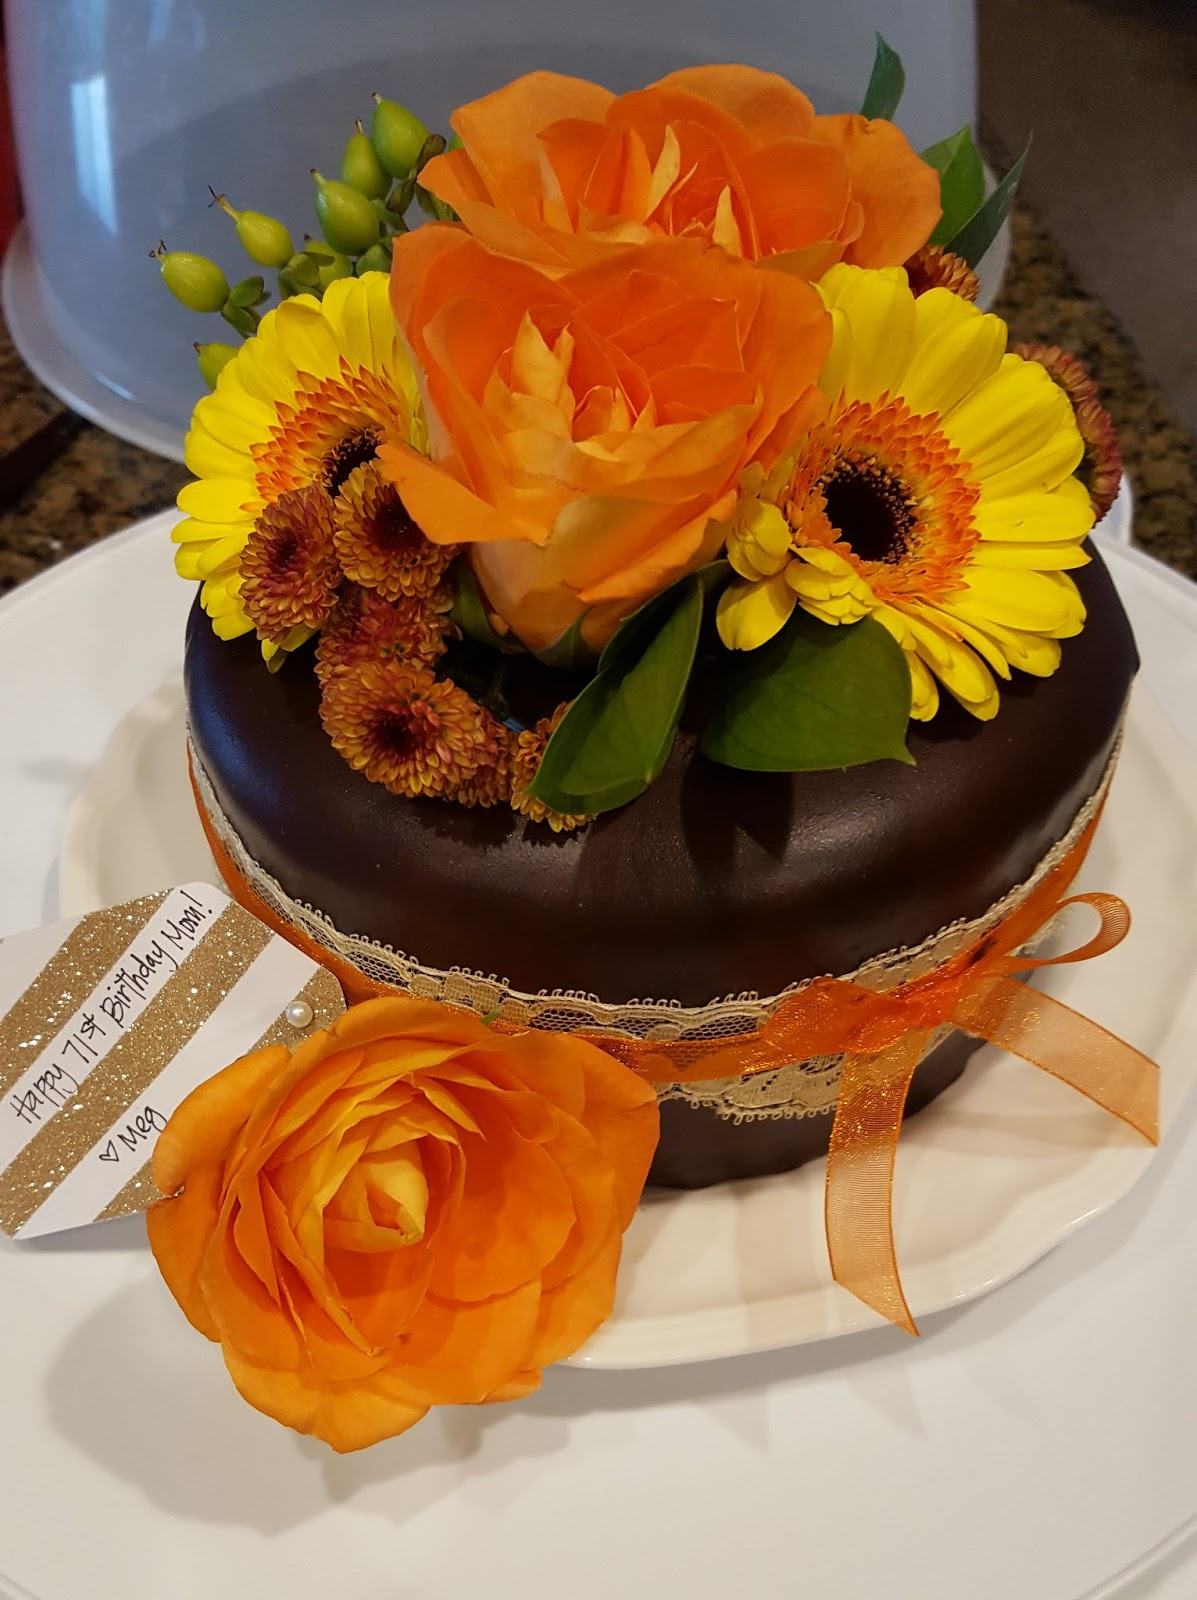 Simply projects november ganache floral cake november ganache birthday cake for my lovely mother she deserves the best i love to put my two favorite things together flowers and cake izmirmasajfo